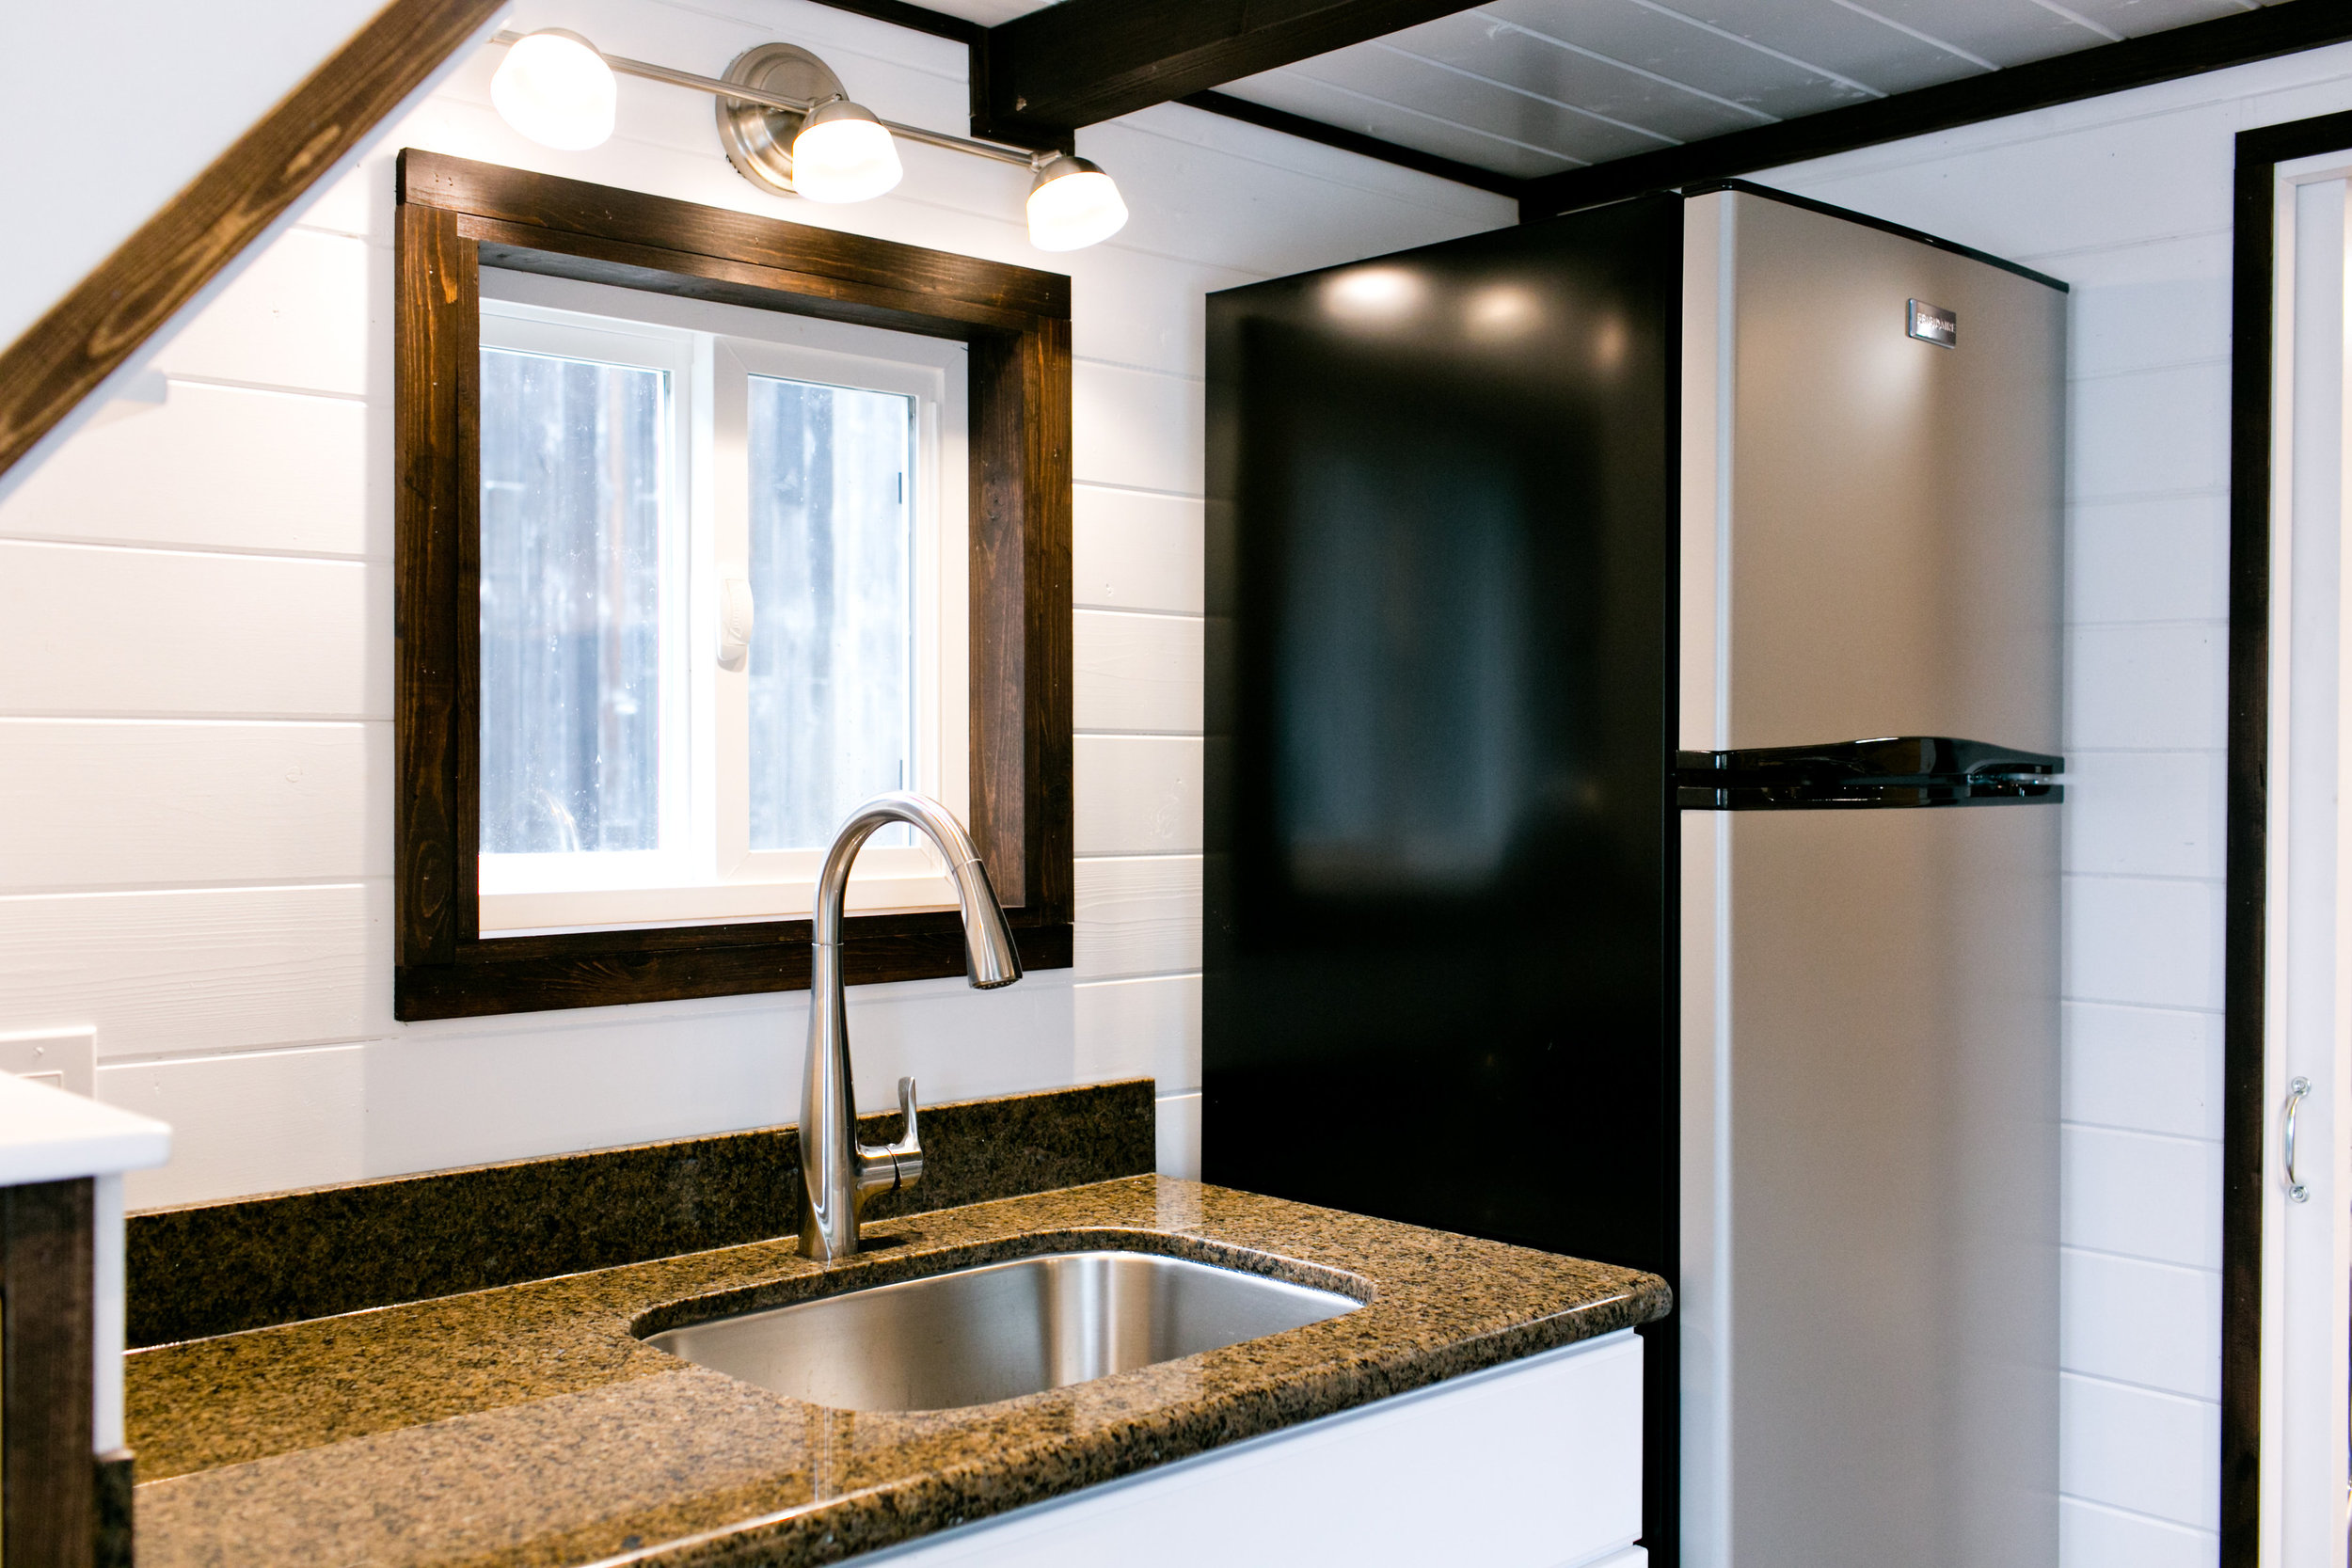 Galley kitchen features sink opposite the stove